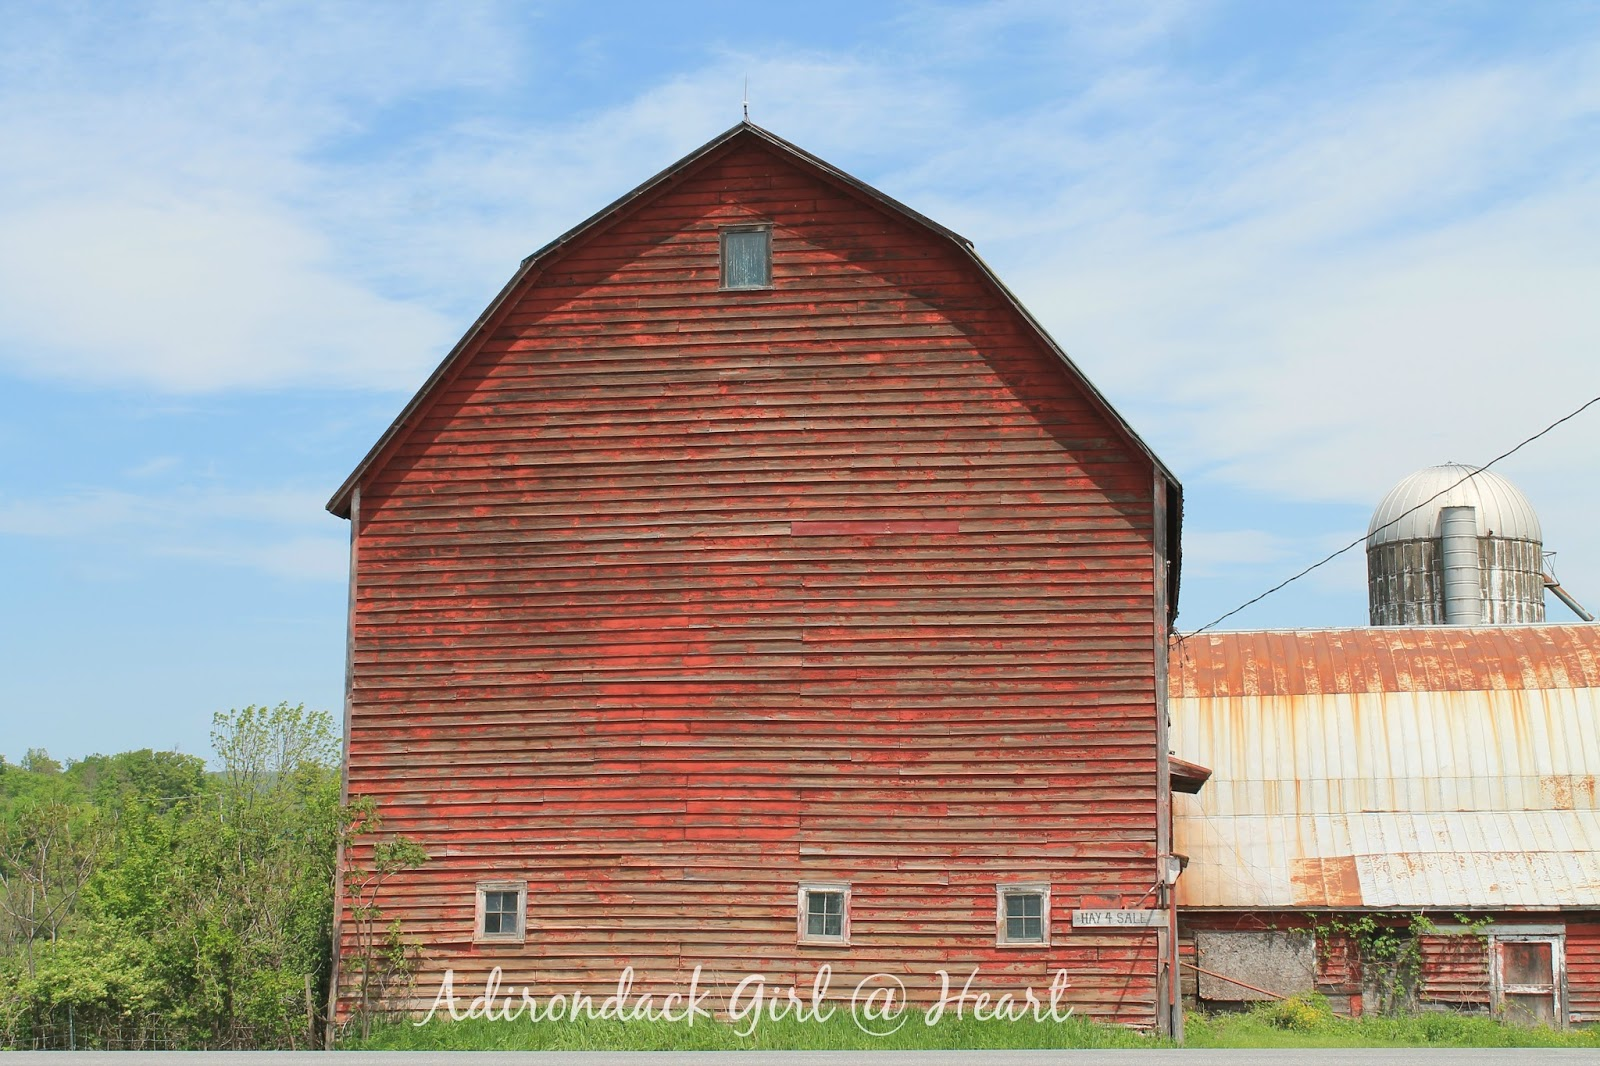 The Romantic Old Barns of Route 20